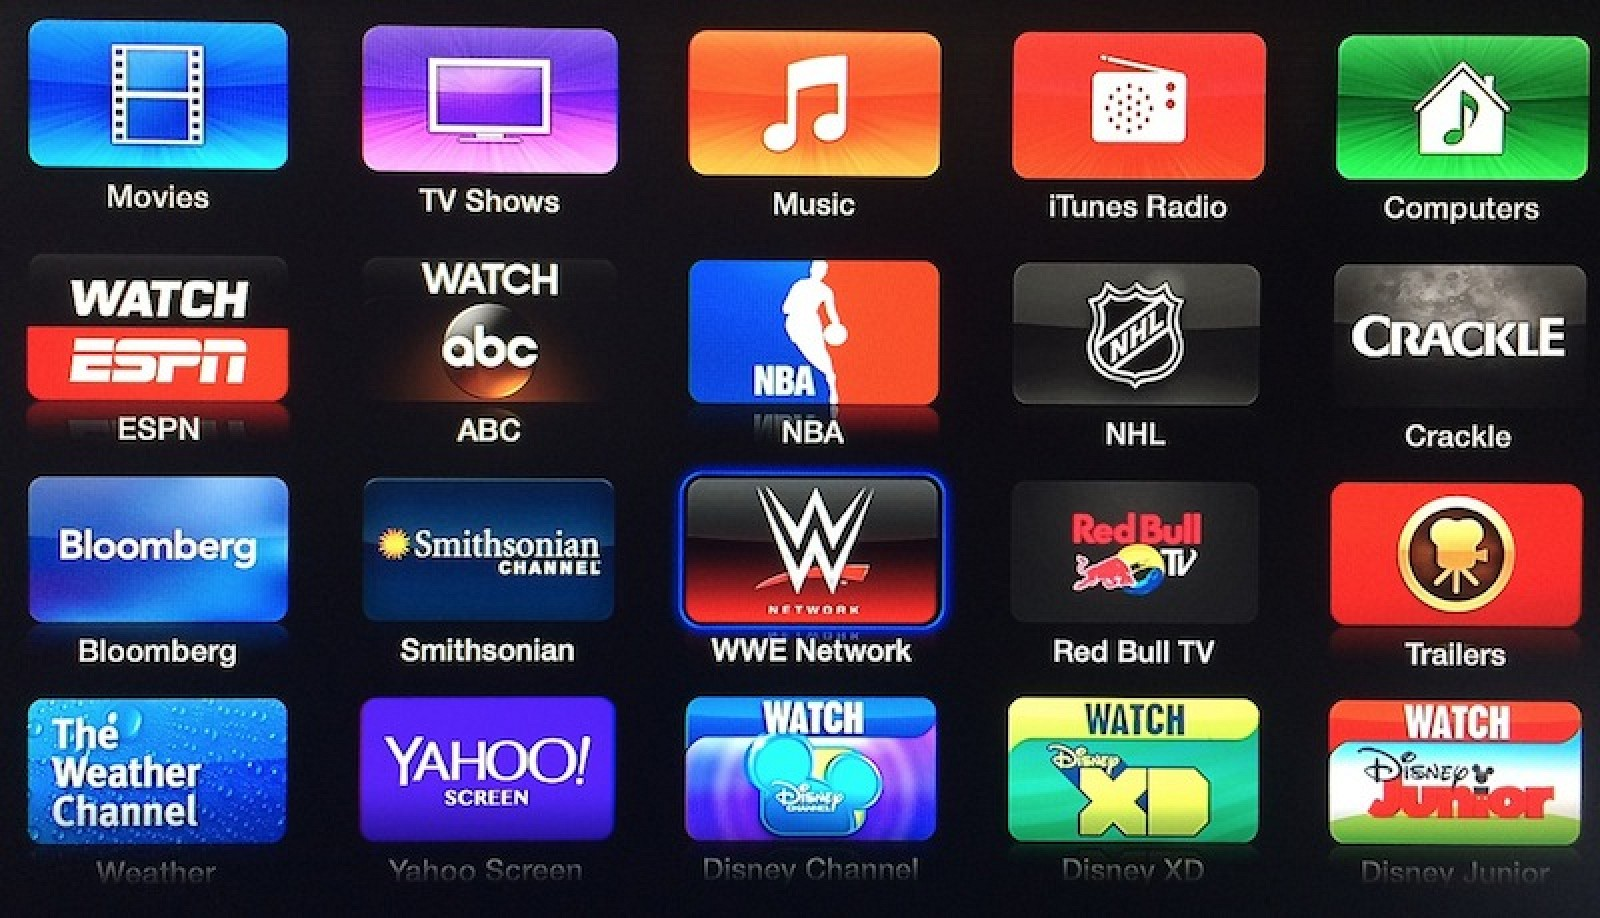 apple tv ios 5.1.1 features